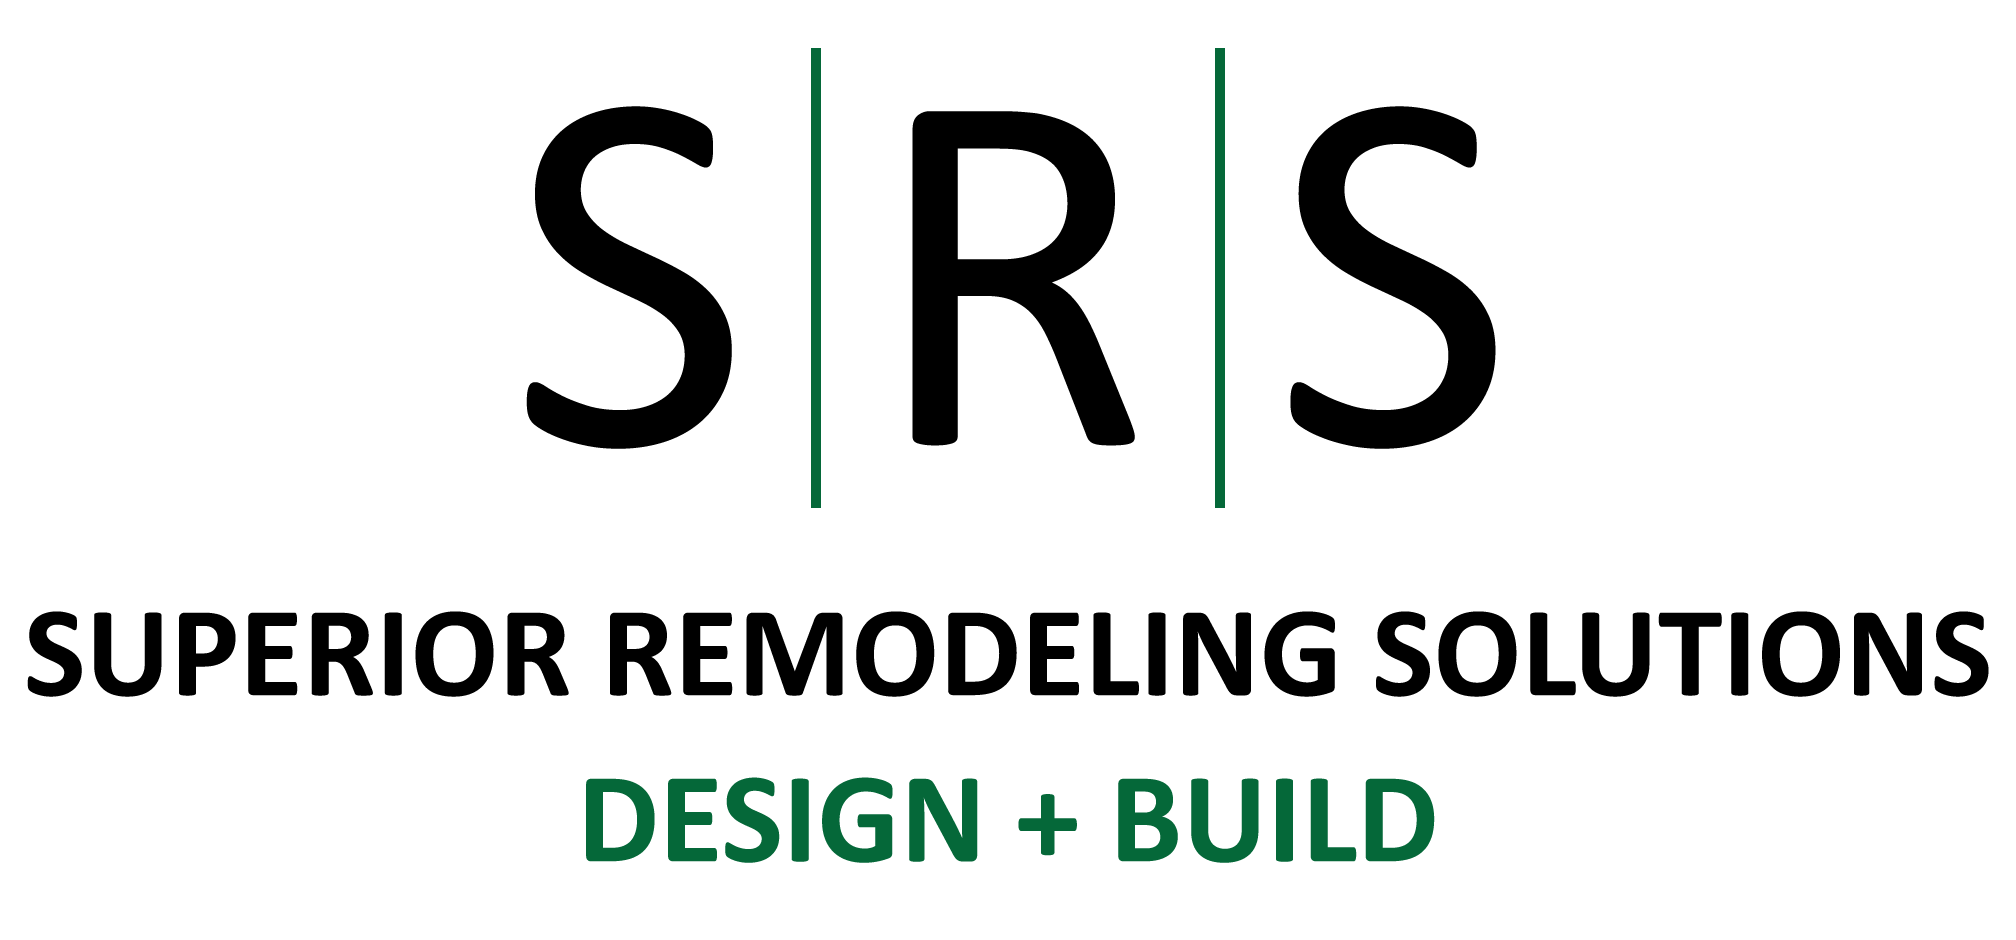 Superior Remodeling Solutions